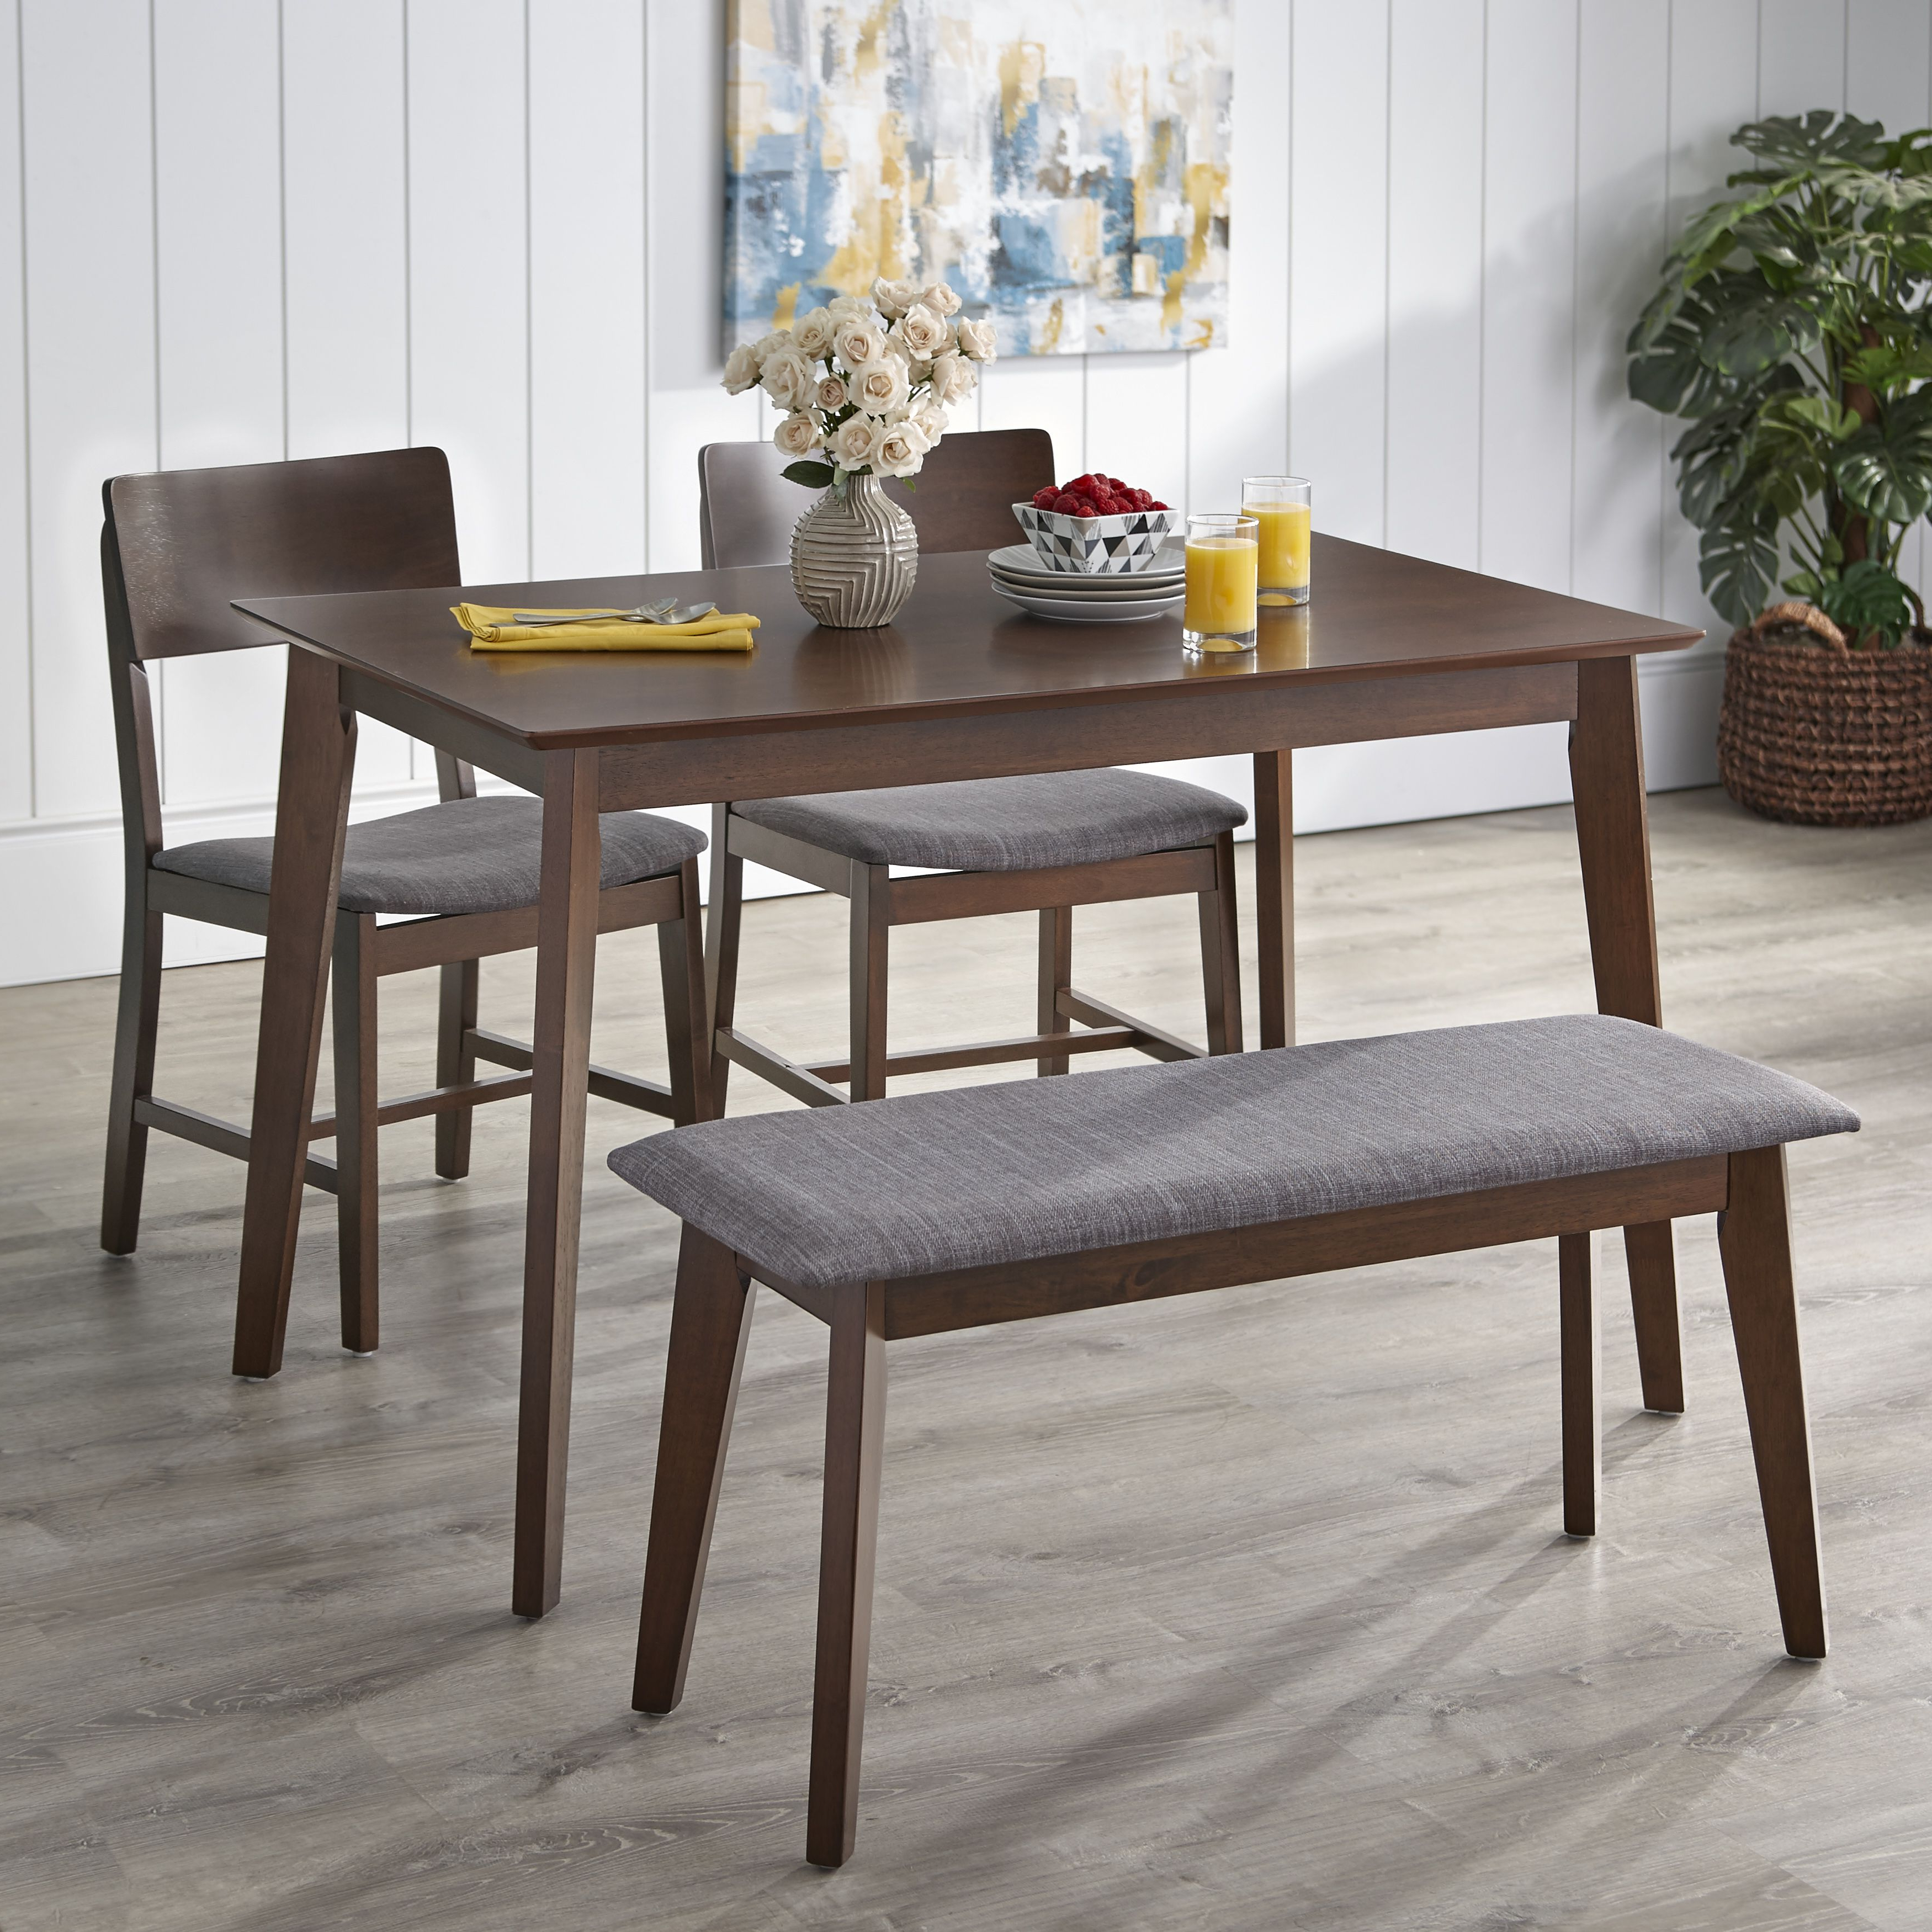 Well Liked Tms Tiara 4 Piece Dining Set With Bench, Multiple Colors#piece For Rossiter 3 Piece Dining Sets (View 16 of 25)